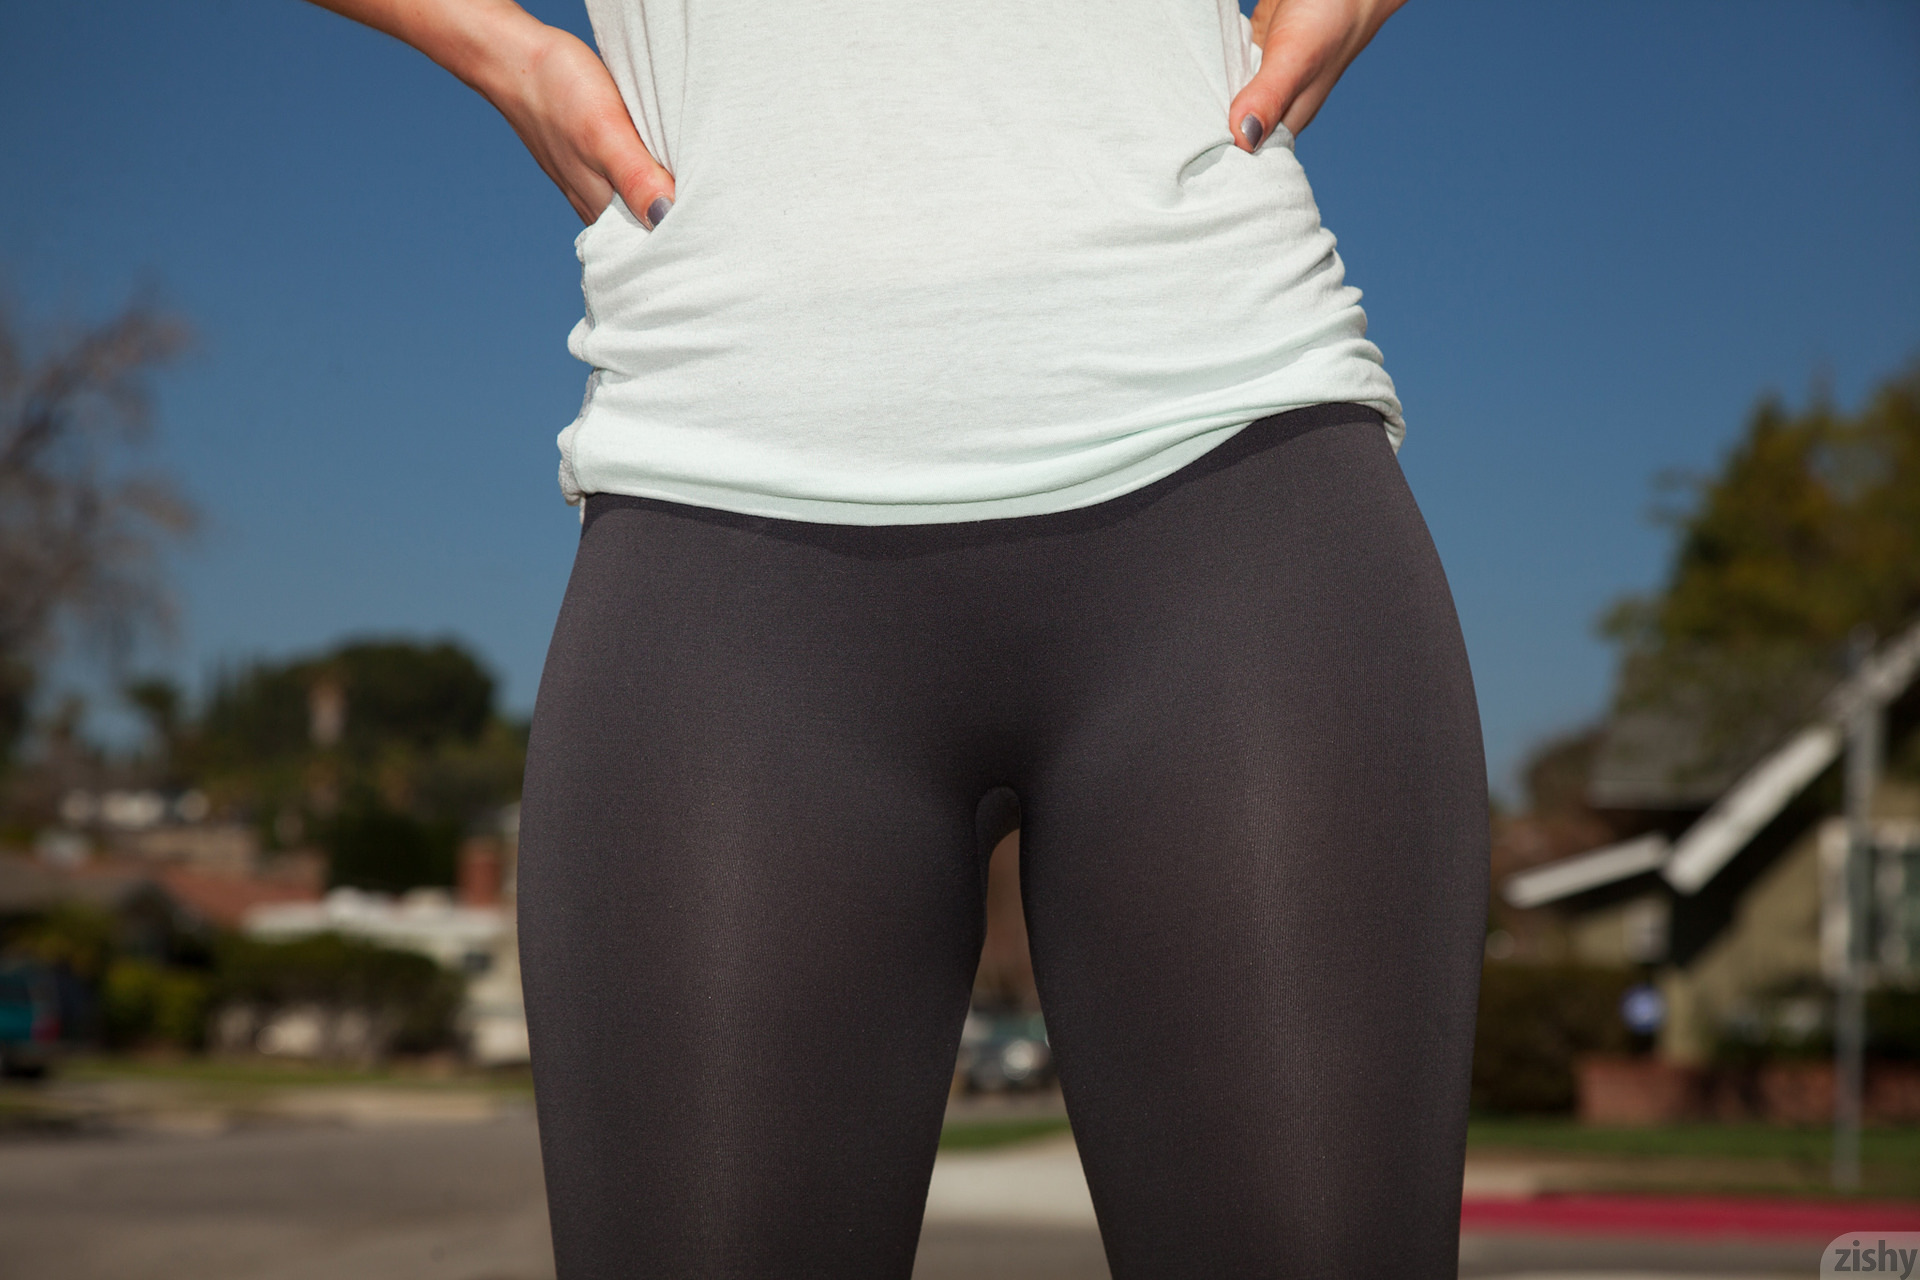 Sheer Pantyhose Works Out 87